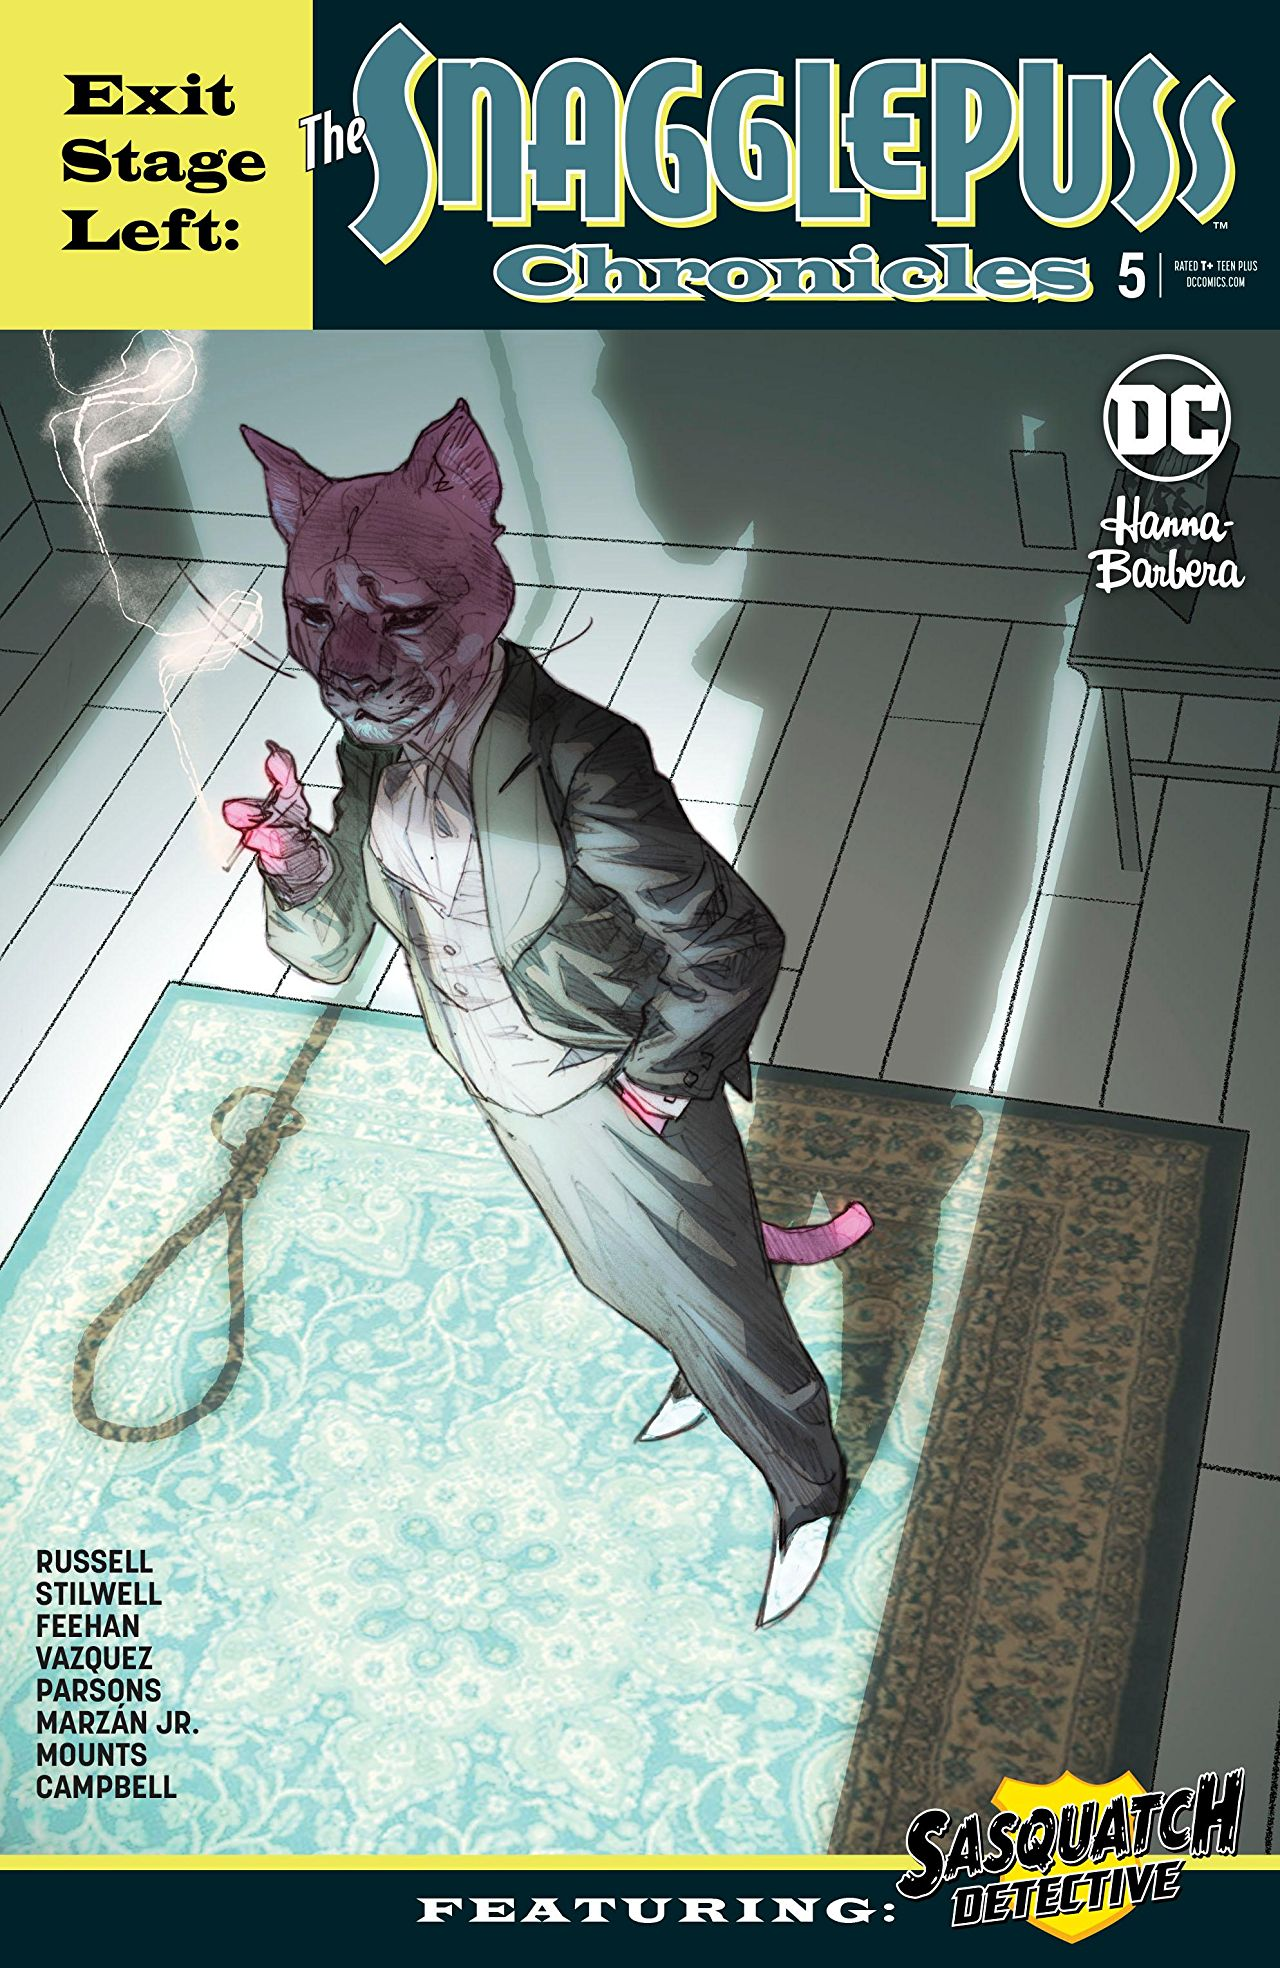 Exit Stage Left: The Snagglepuss Chronicles Vol 1 5